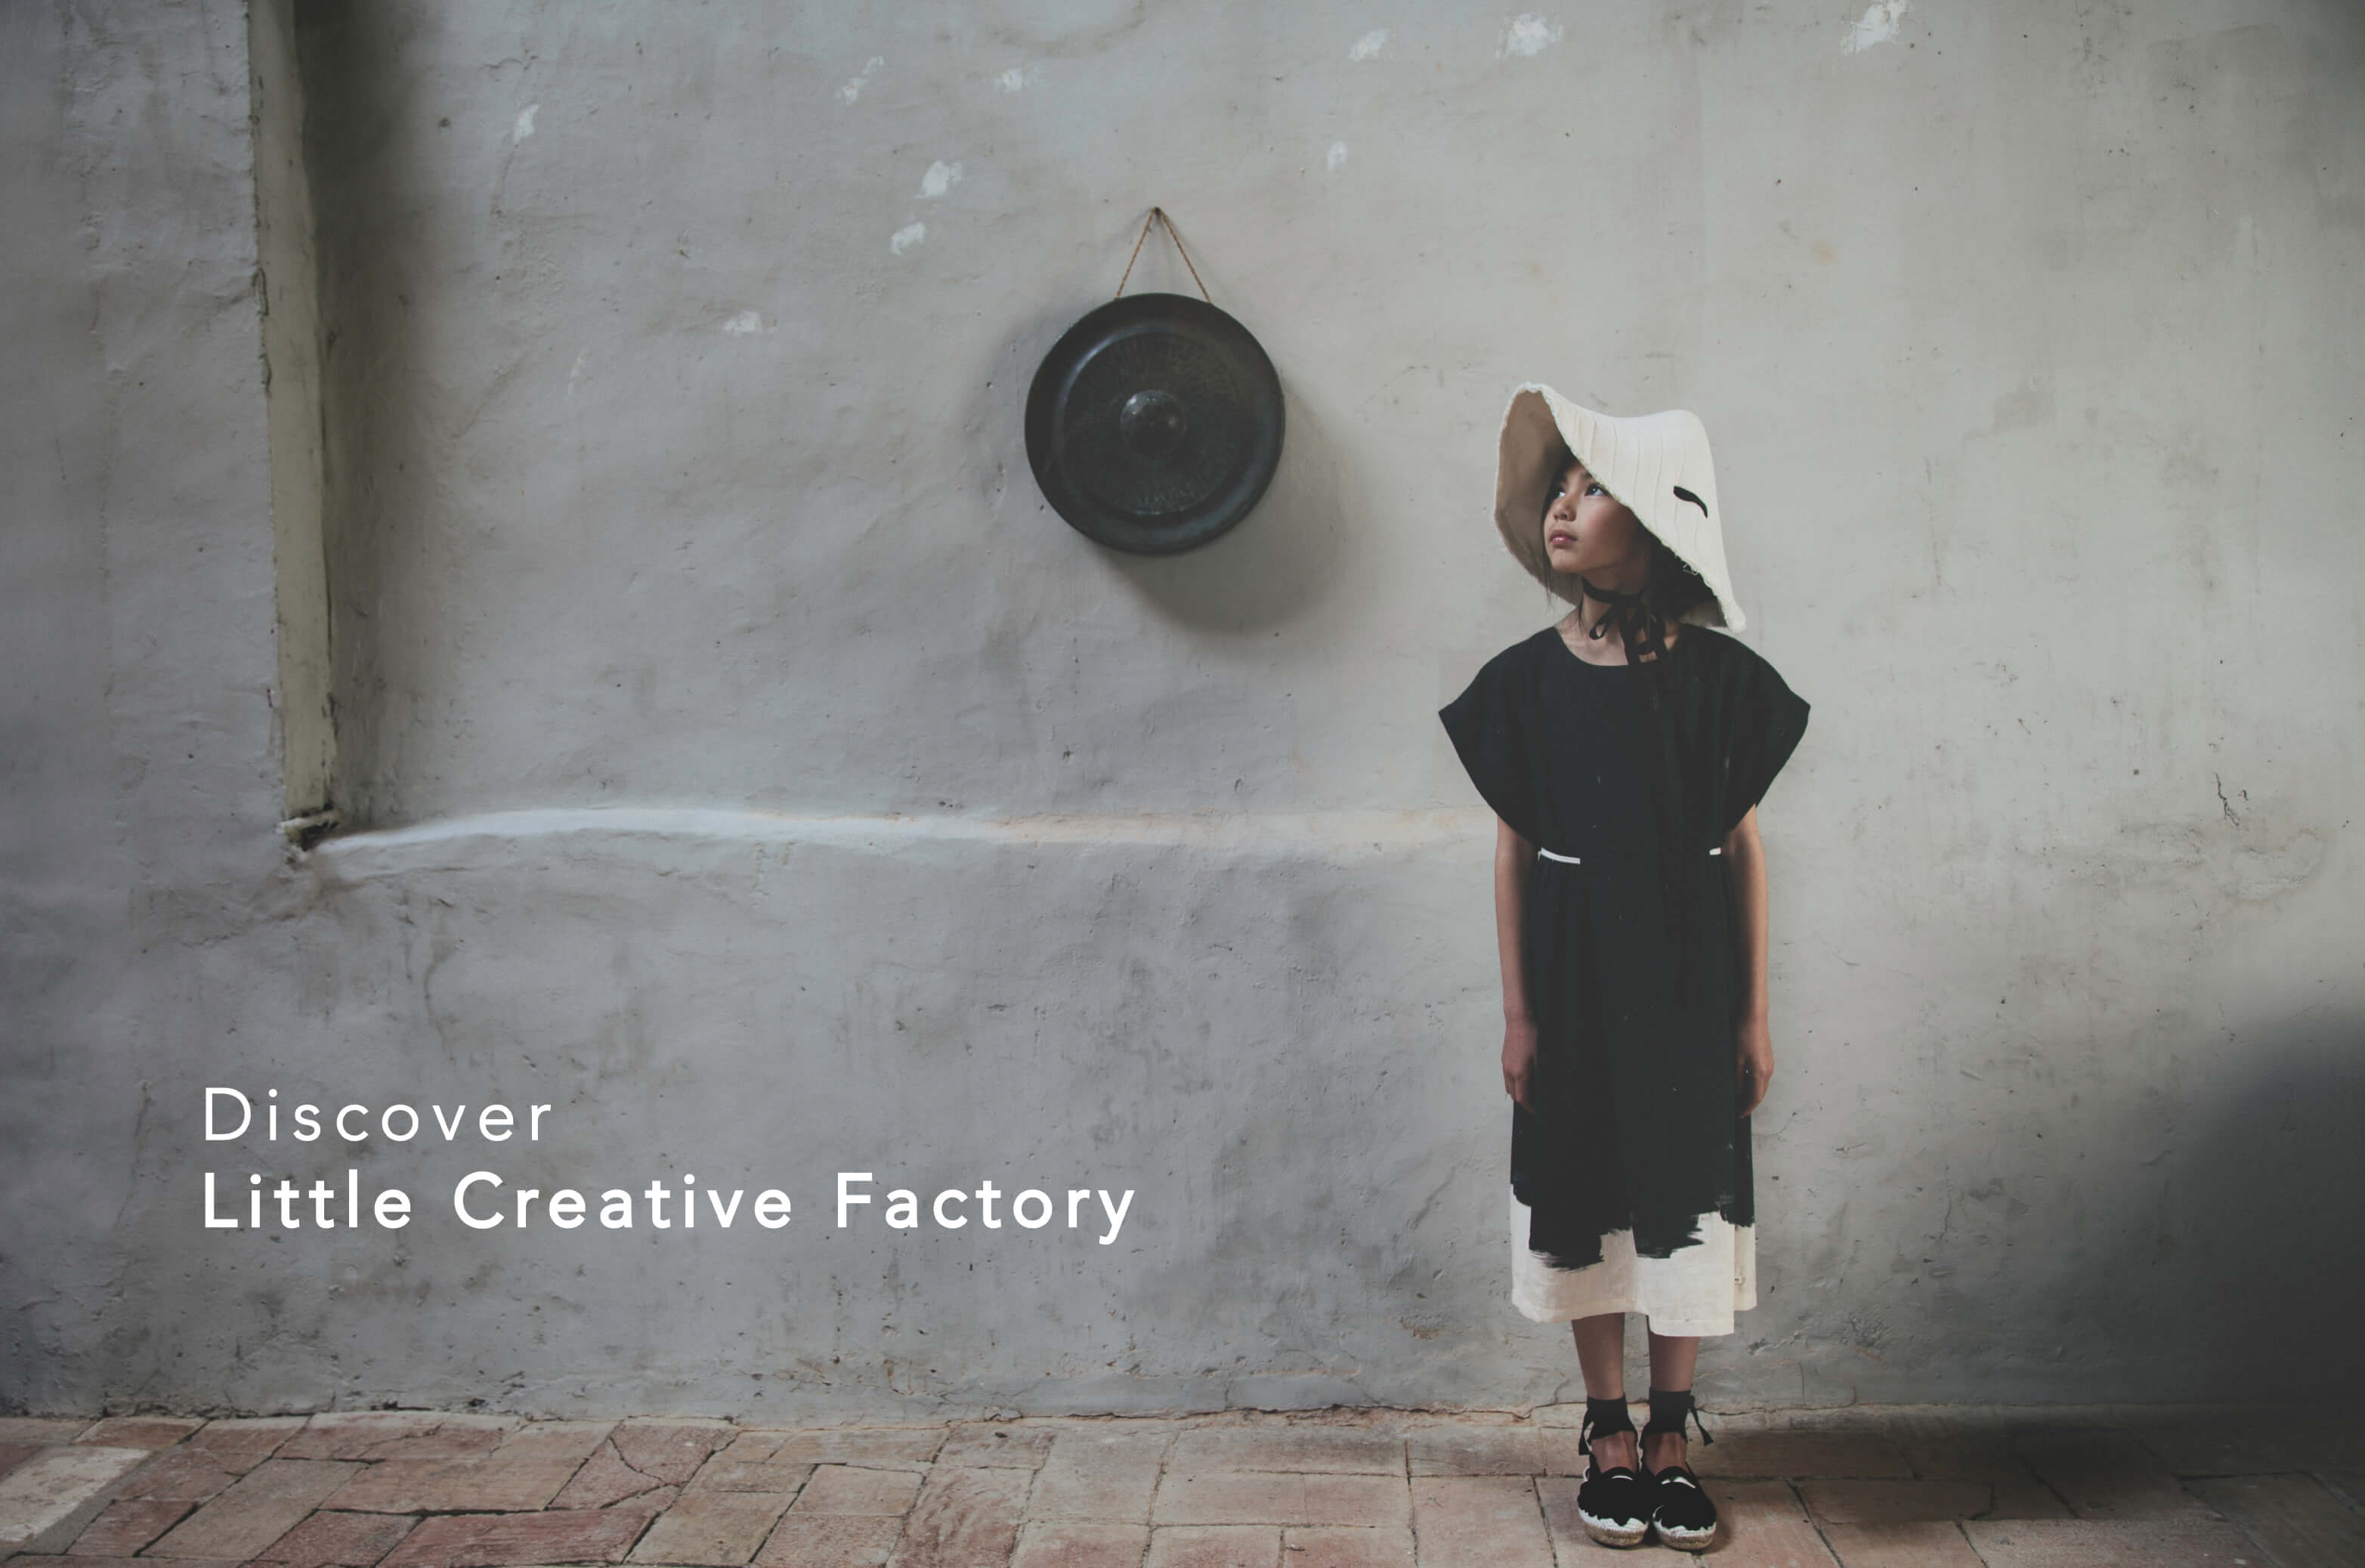 LITTLE CREATIVE FACTORY SPRING/SUMMER 2019 | BIEN BIEN